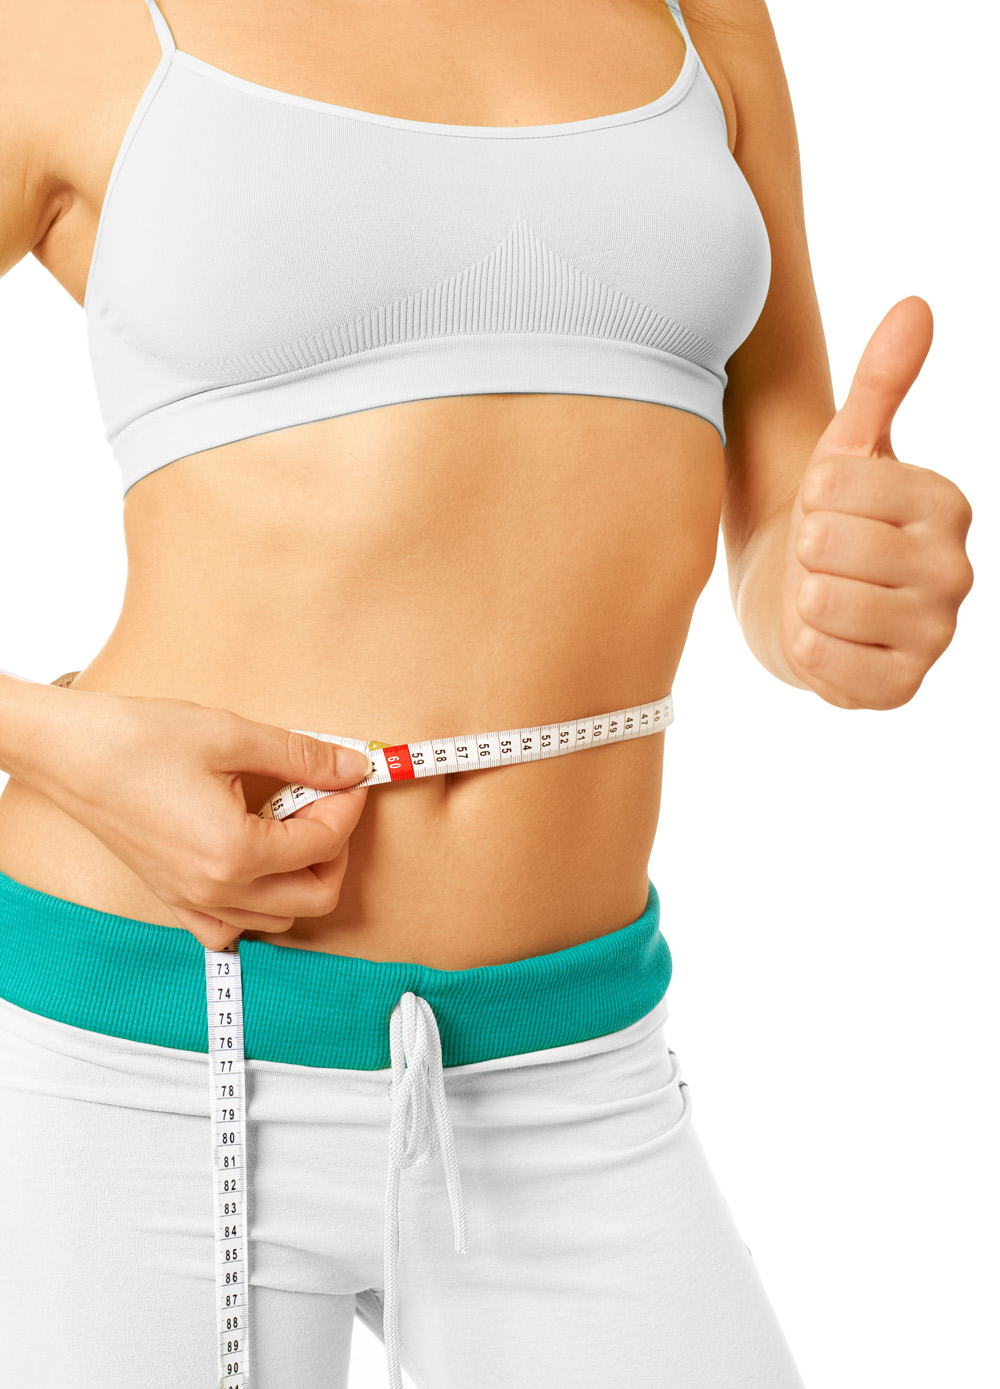 uc health weight loss center west chester